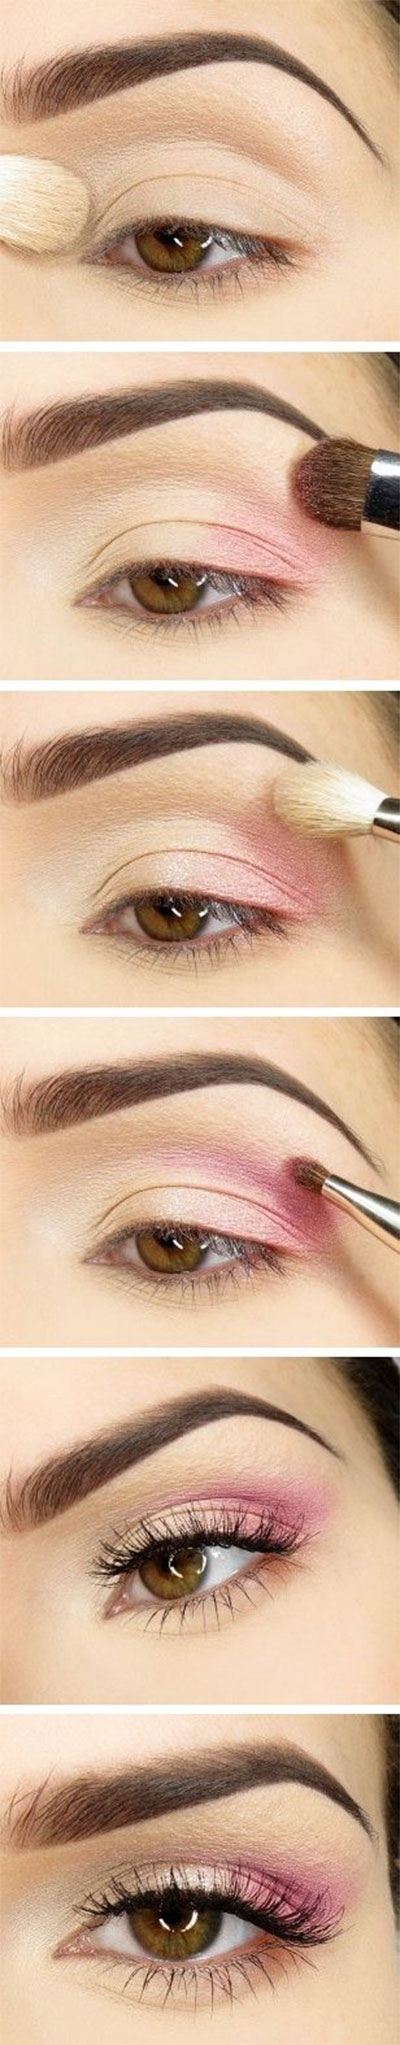 12-Valentines-Day-Makeup-Tutorials-For-Beginners-2017-9